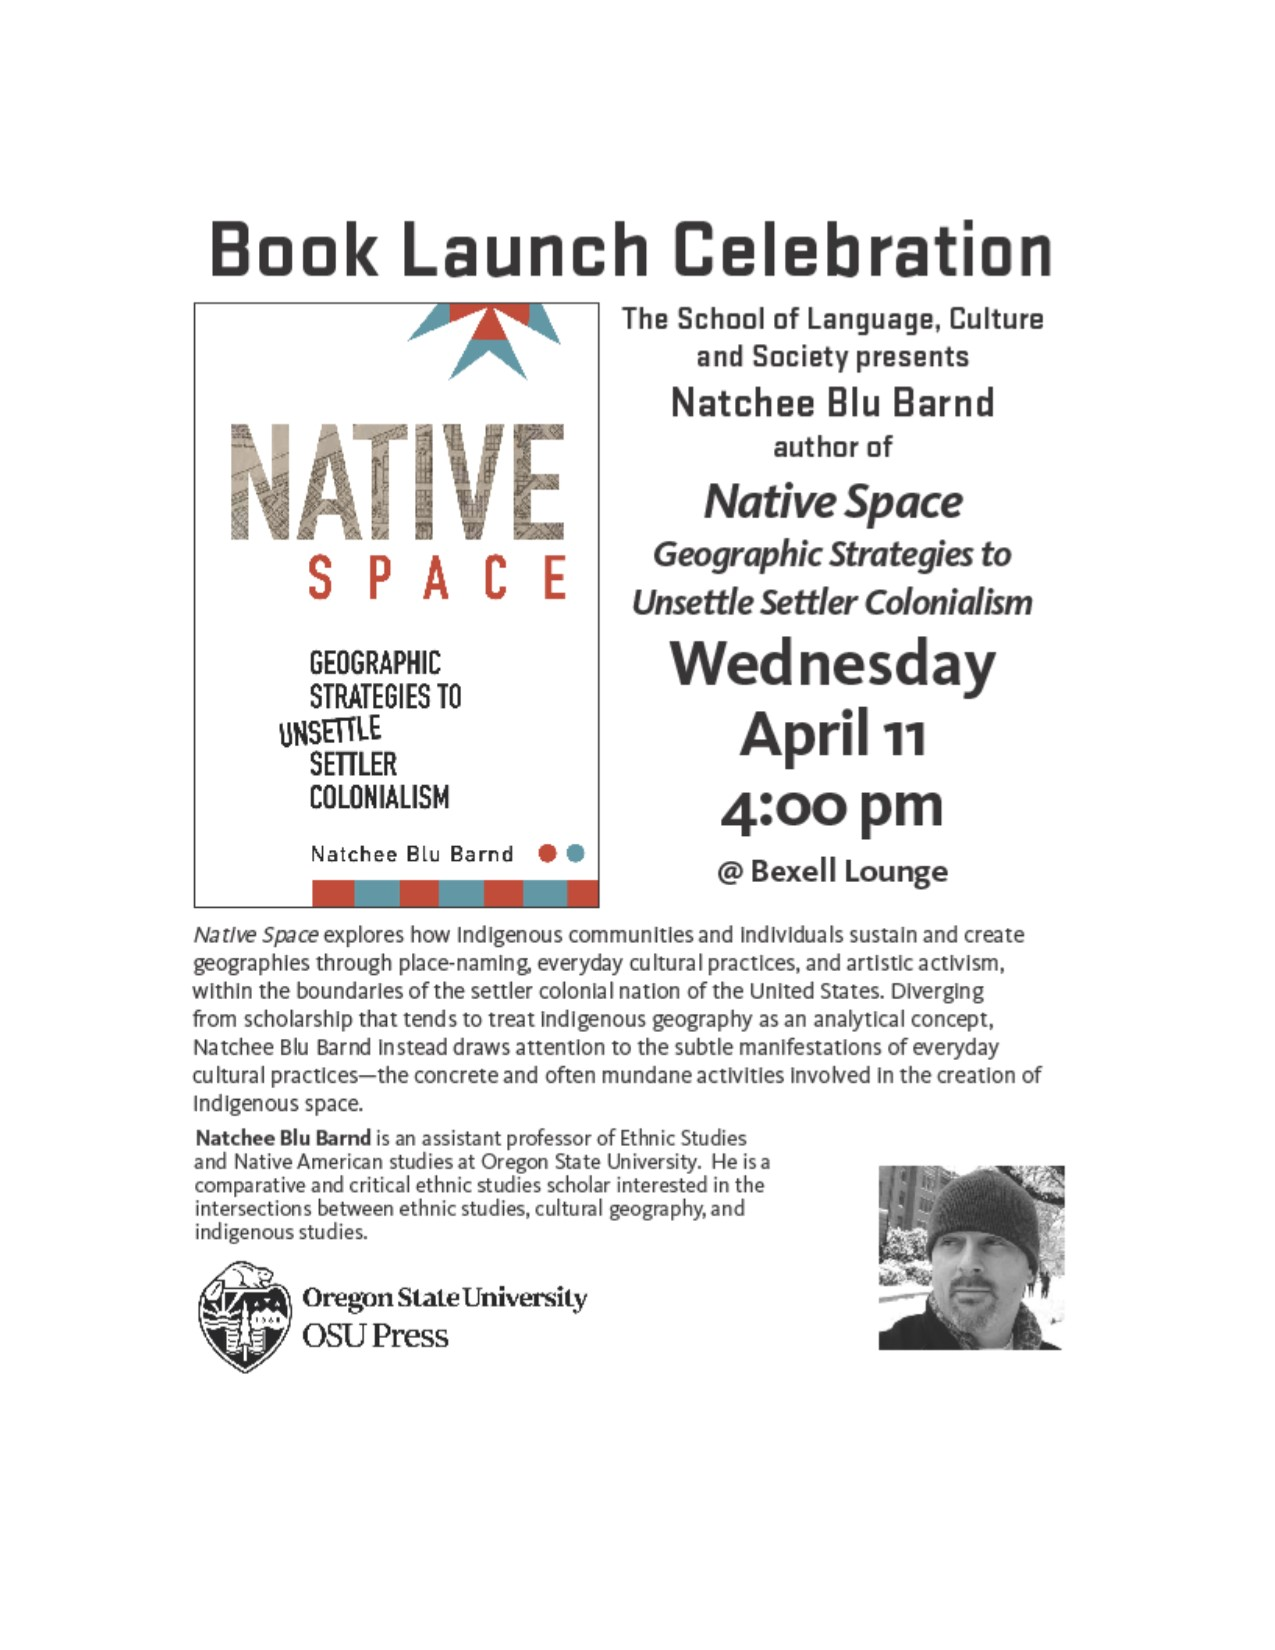 Book Launch Celebration/Native Space